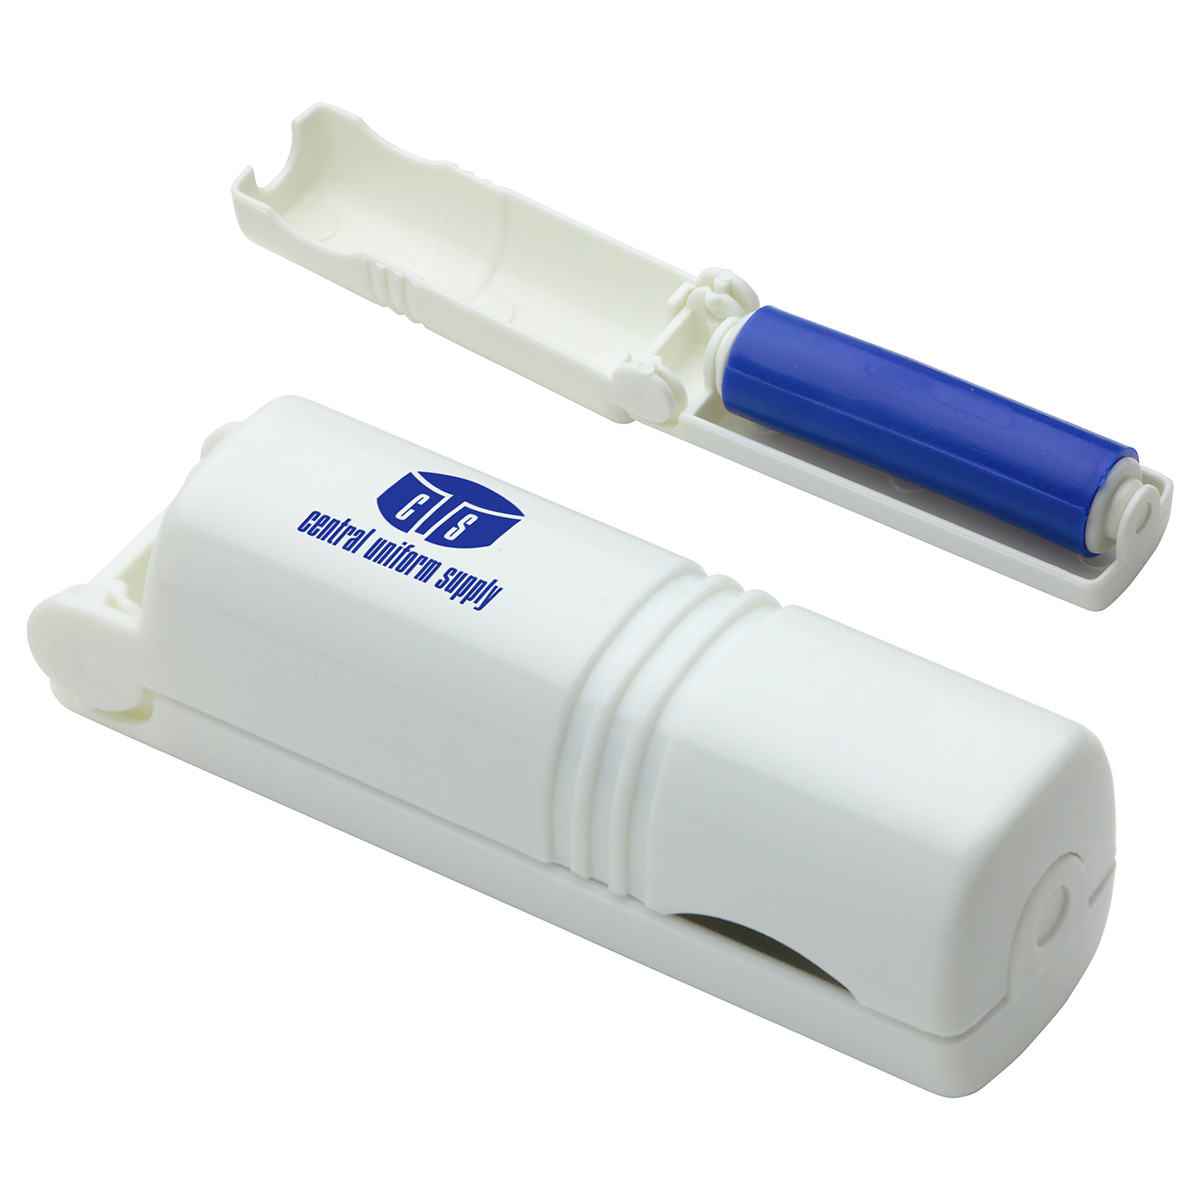 Roll And Rinse Lint Remover, WPC-LR12 - 1 Colour Imprint